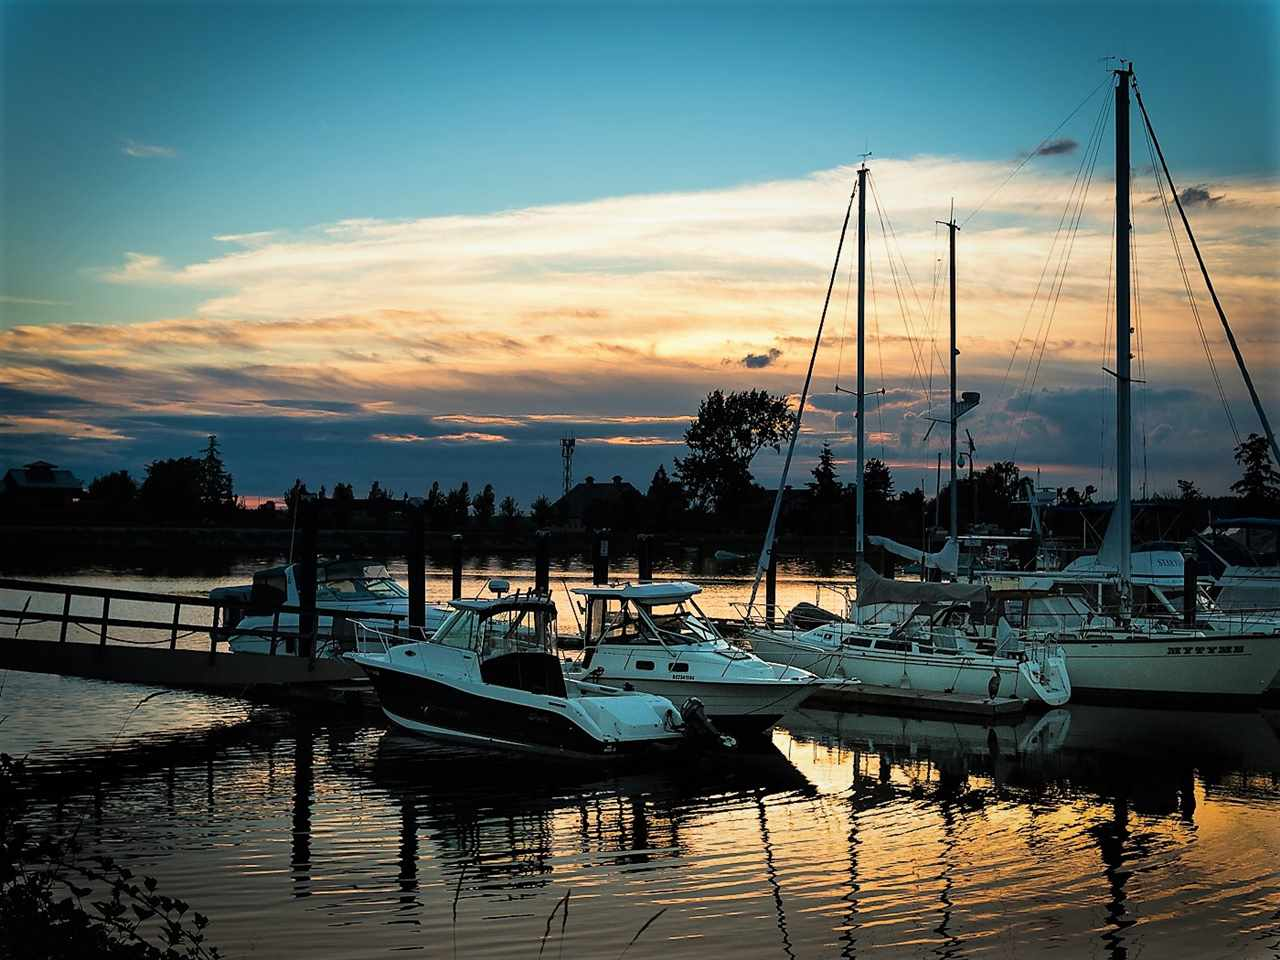 A gorgeous sunset at the private marina. Moorage is $3.00ft, kayak storage also available.